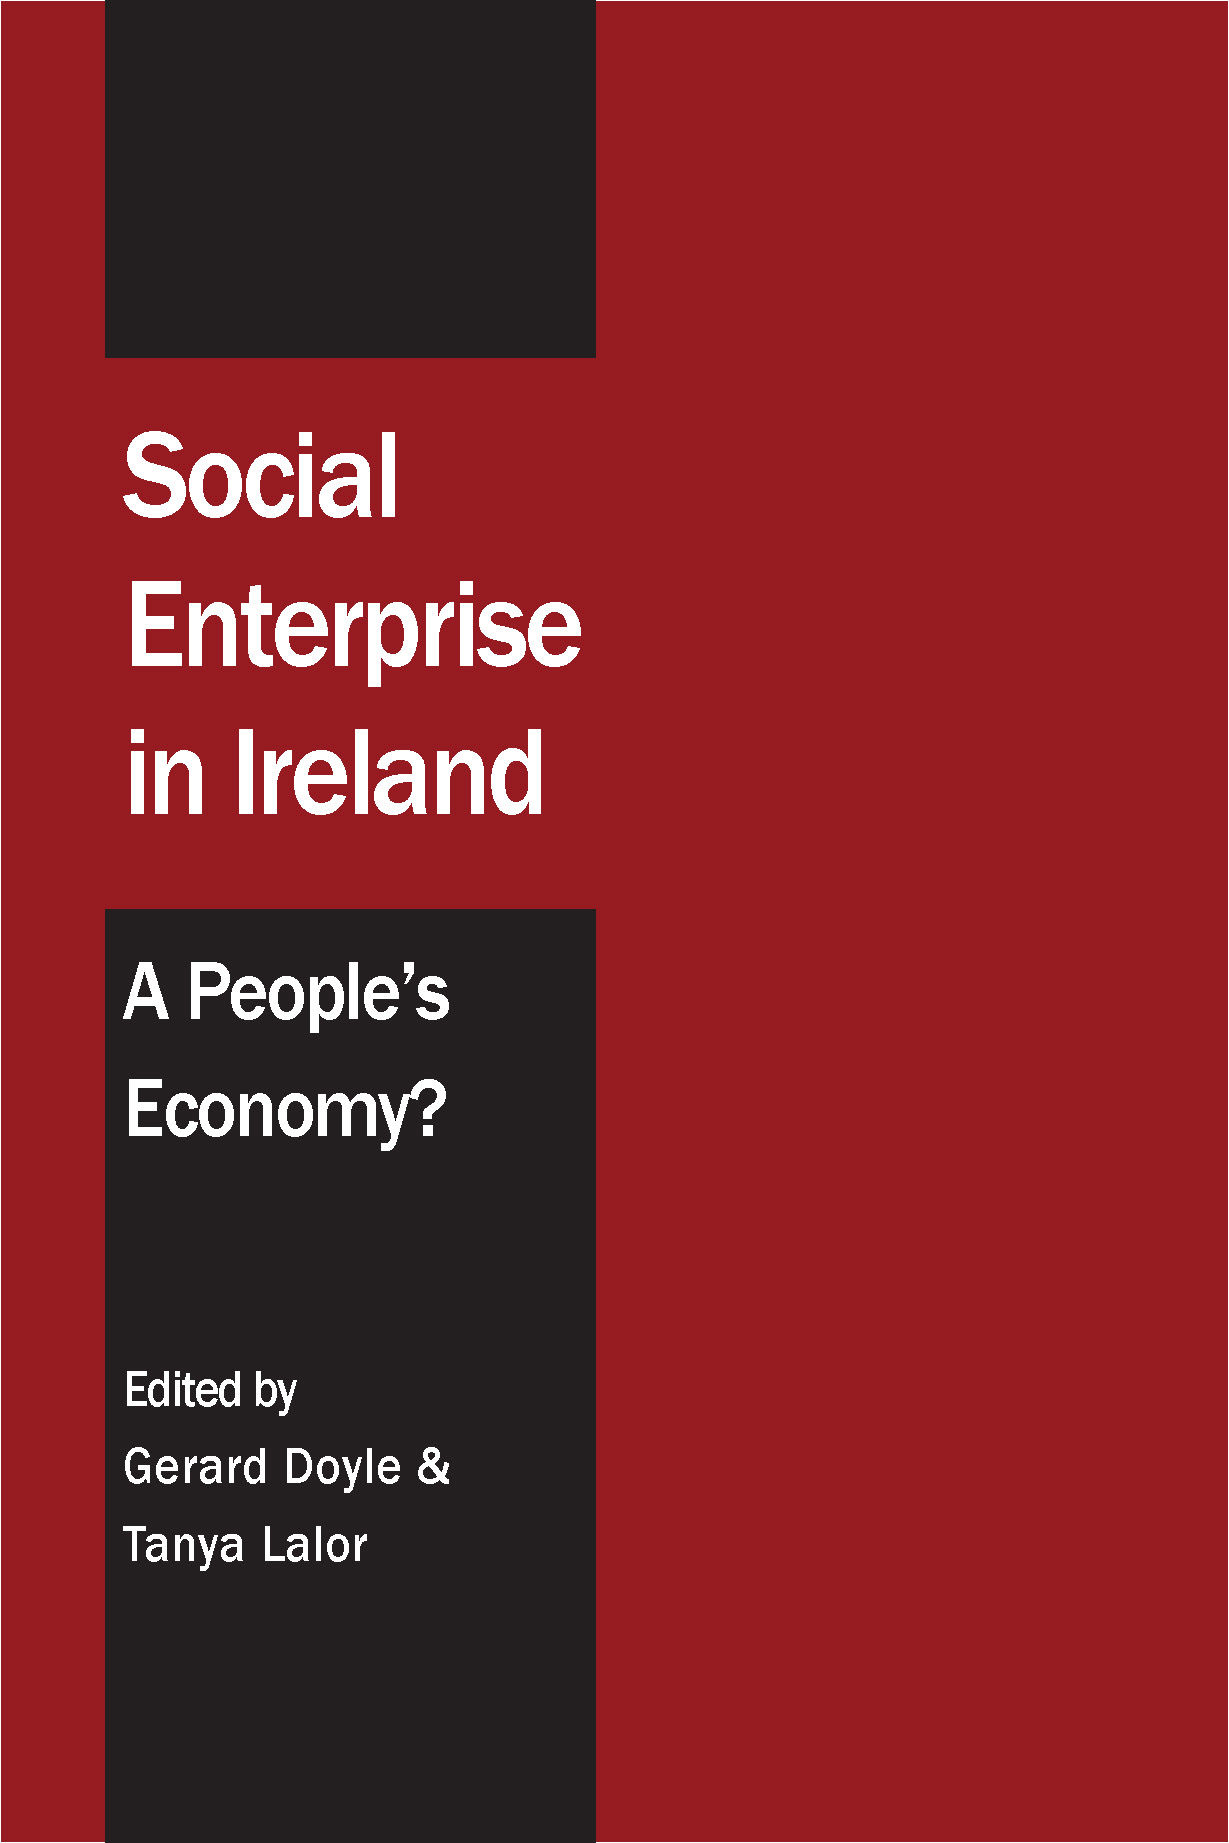 Social Enterprise in Ireland: A People's Economy?